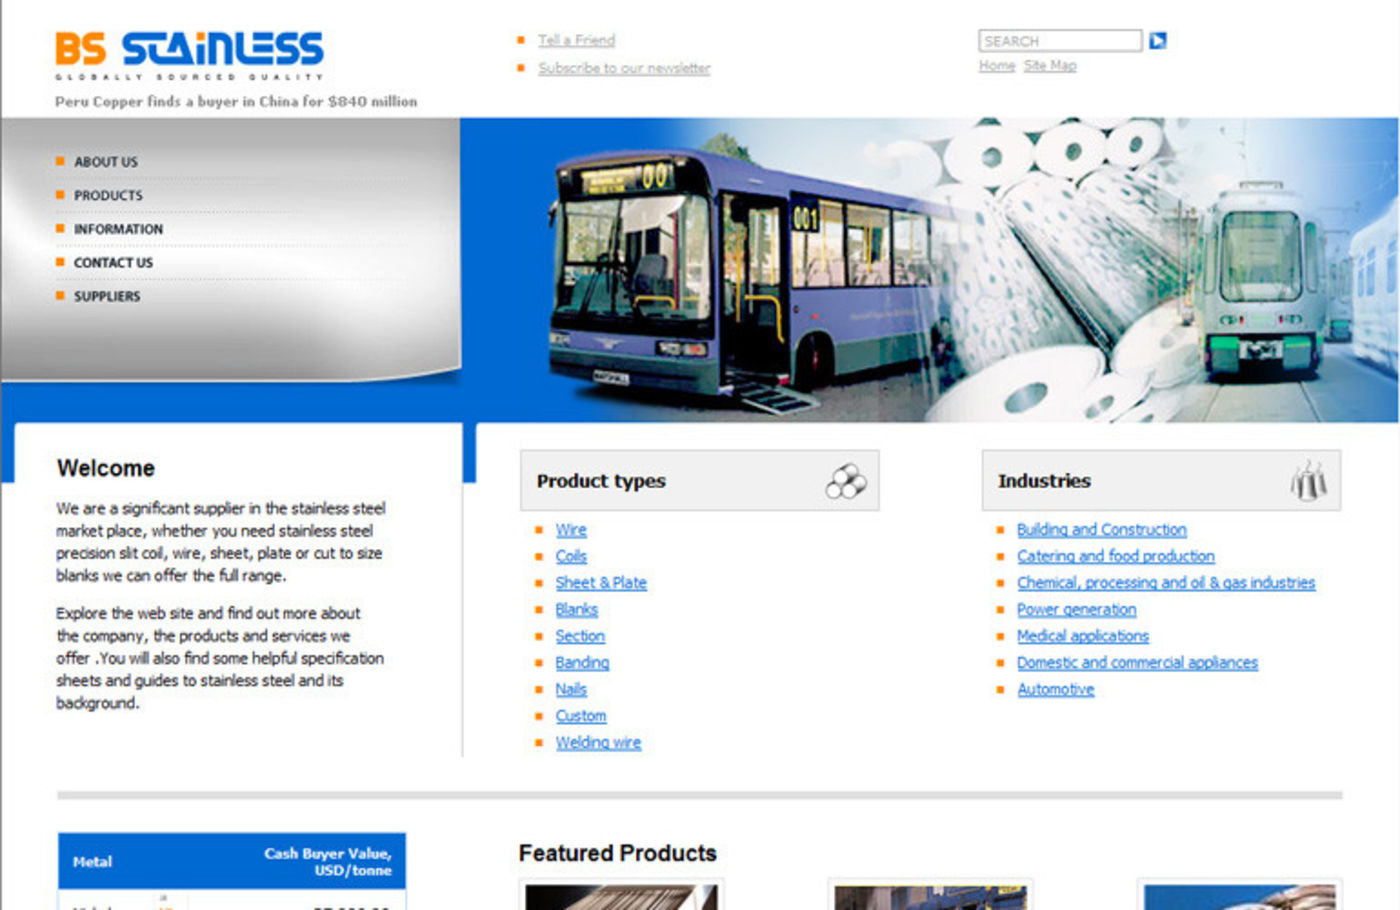 BS Stainless 2004 Homepage header